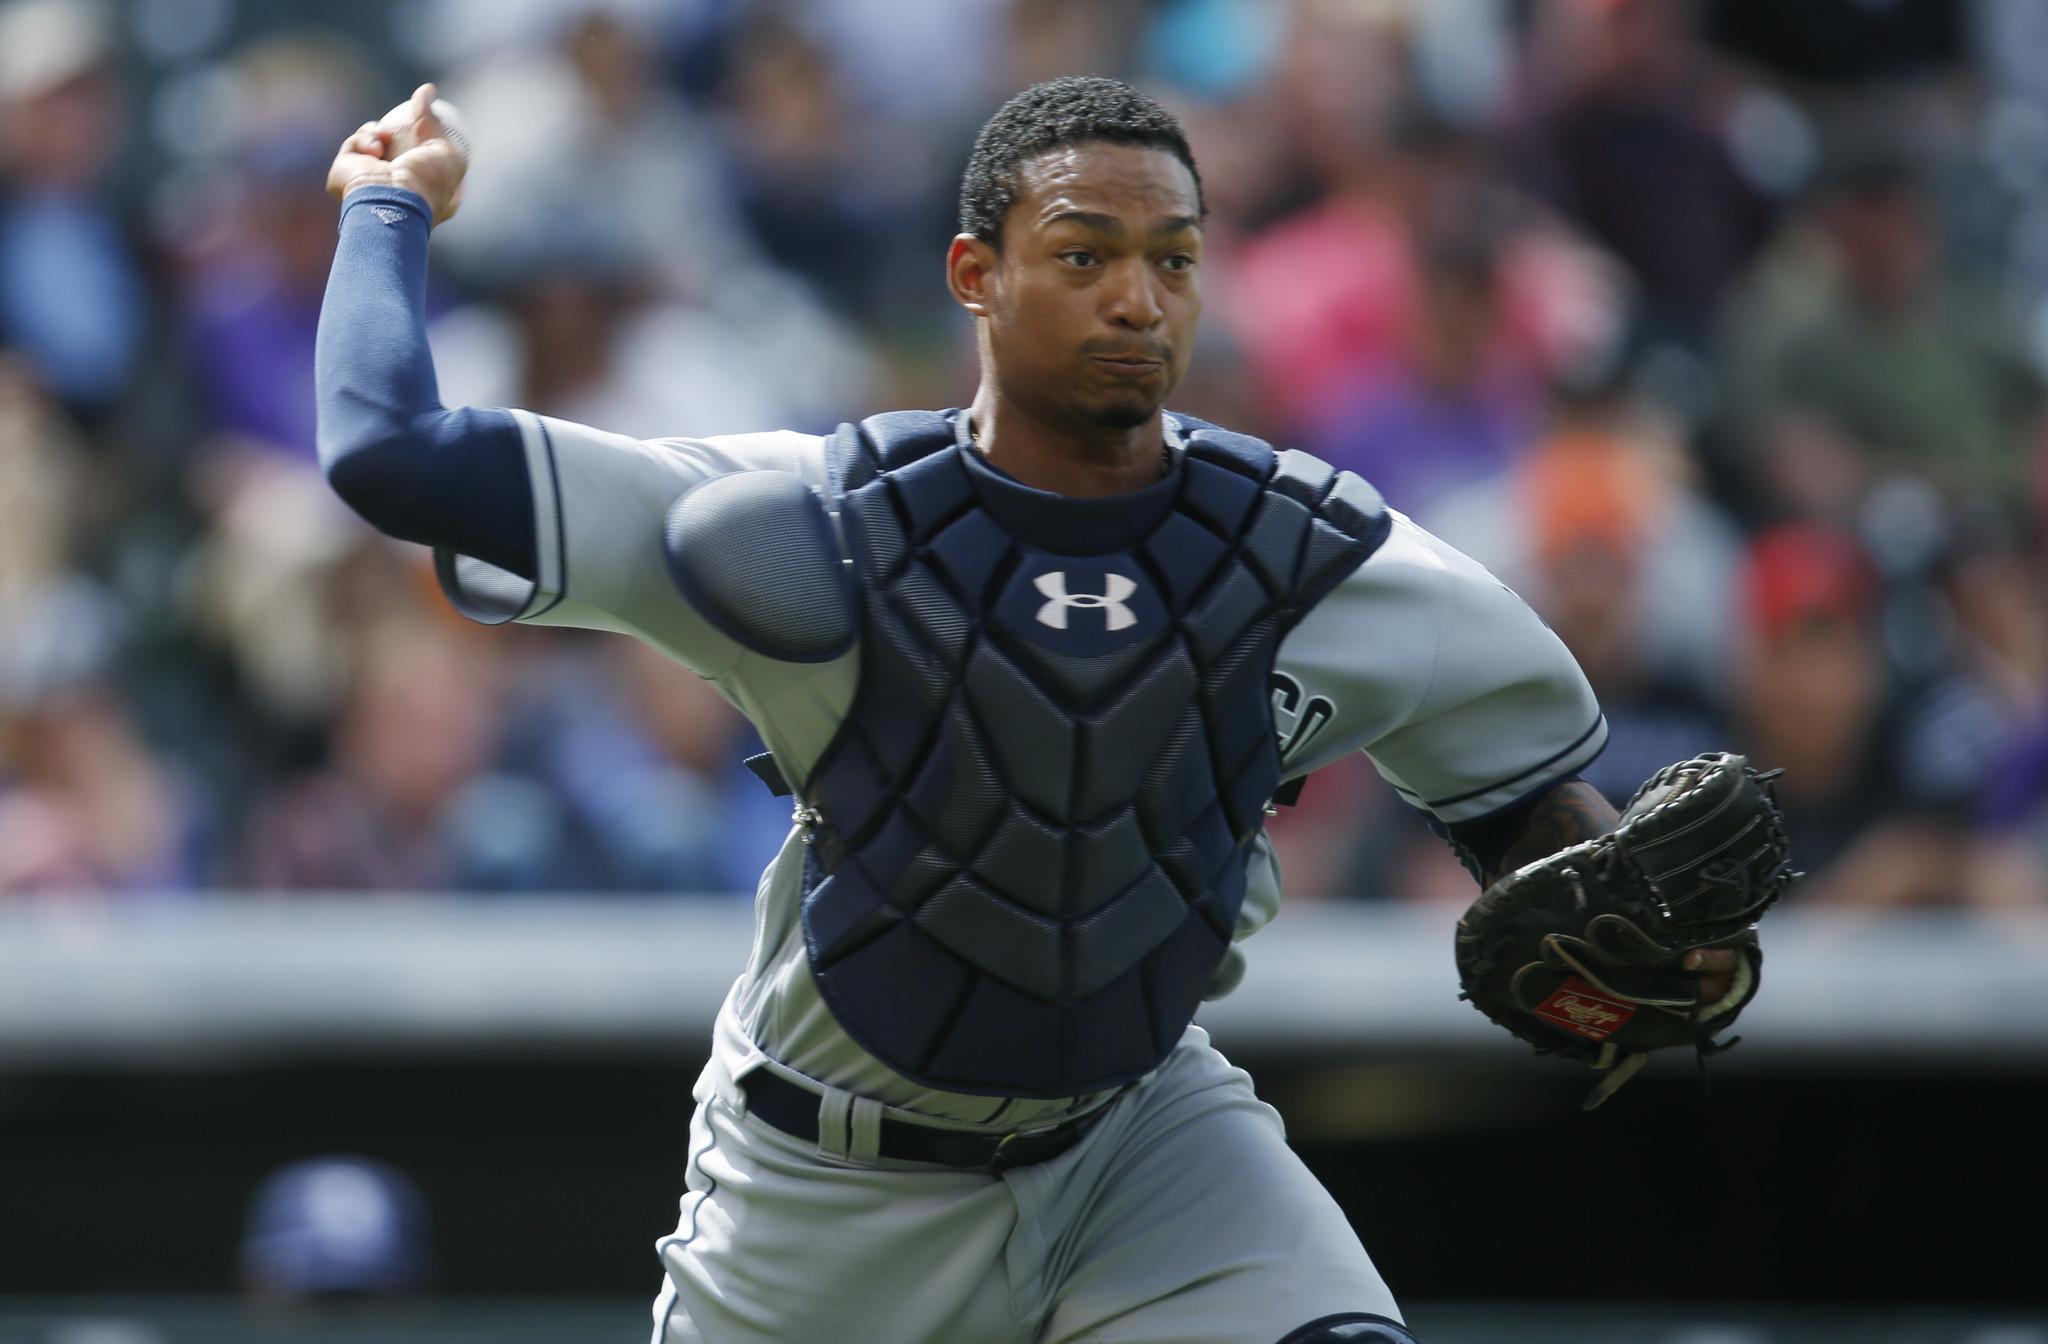 Sd-sp-padres-roster-review-christian-bethancourt-20170104